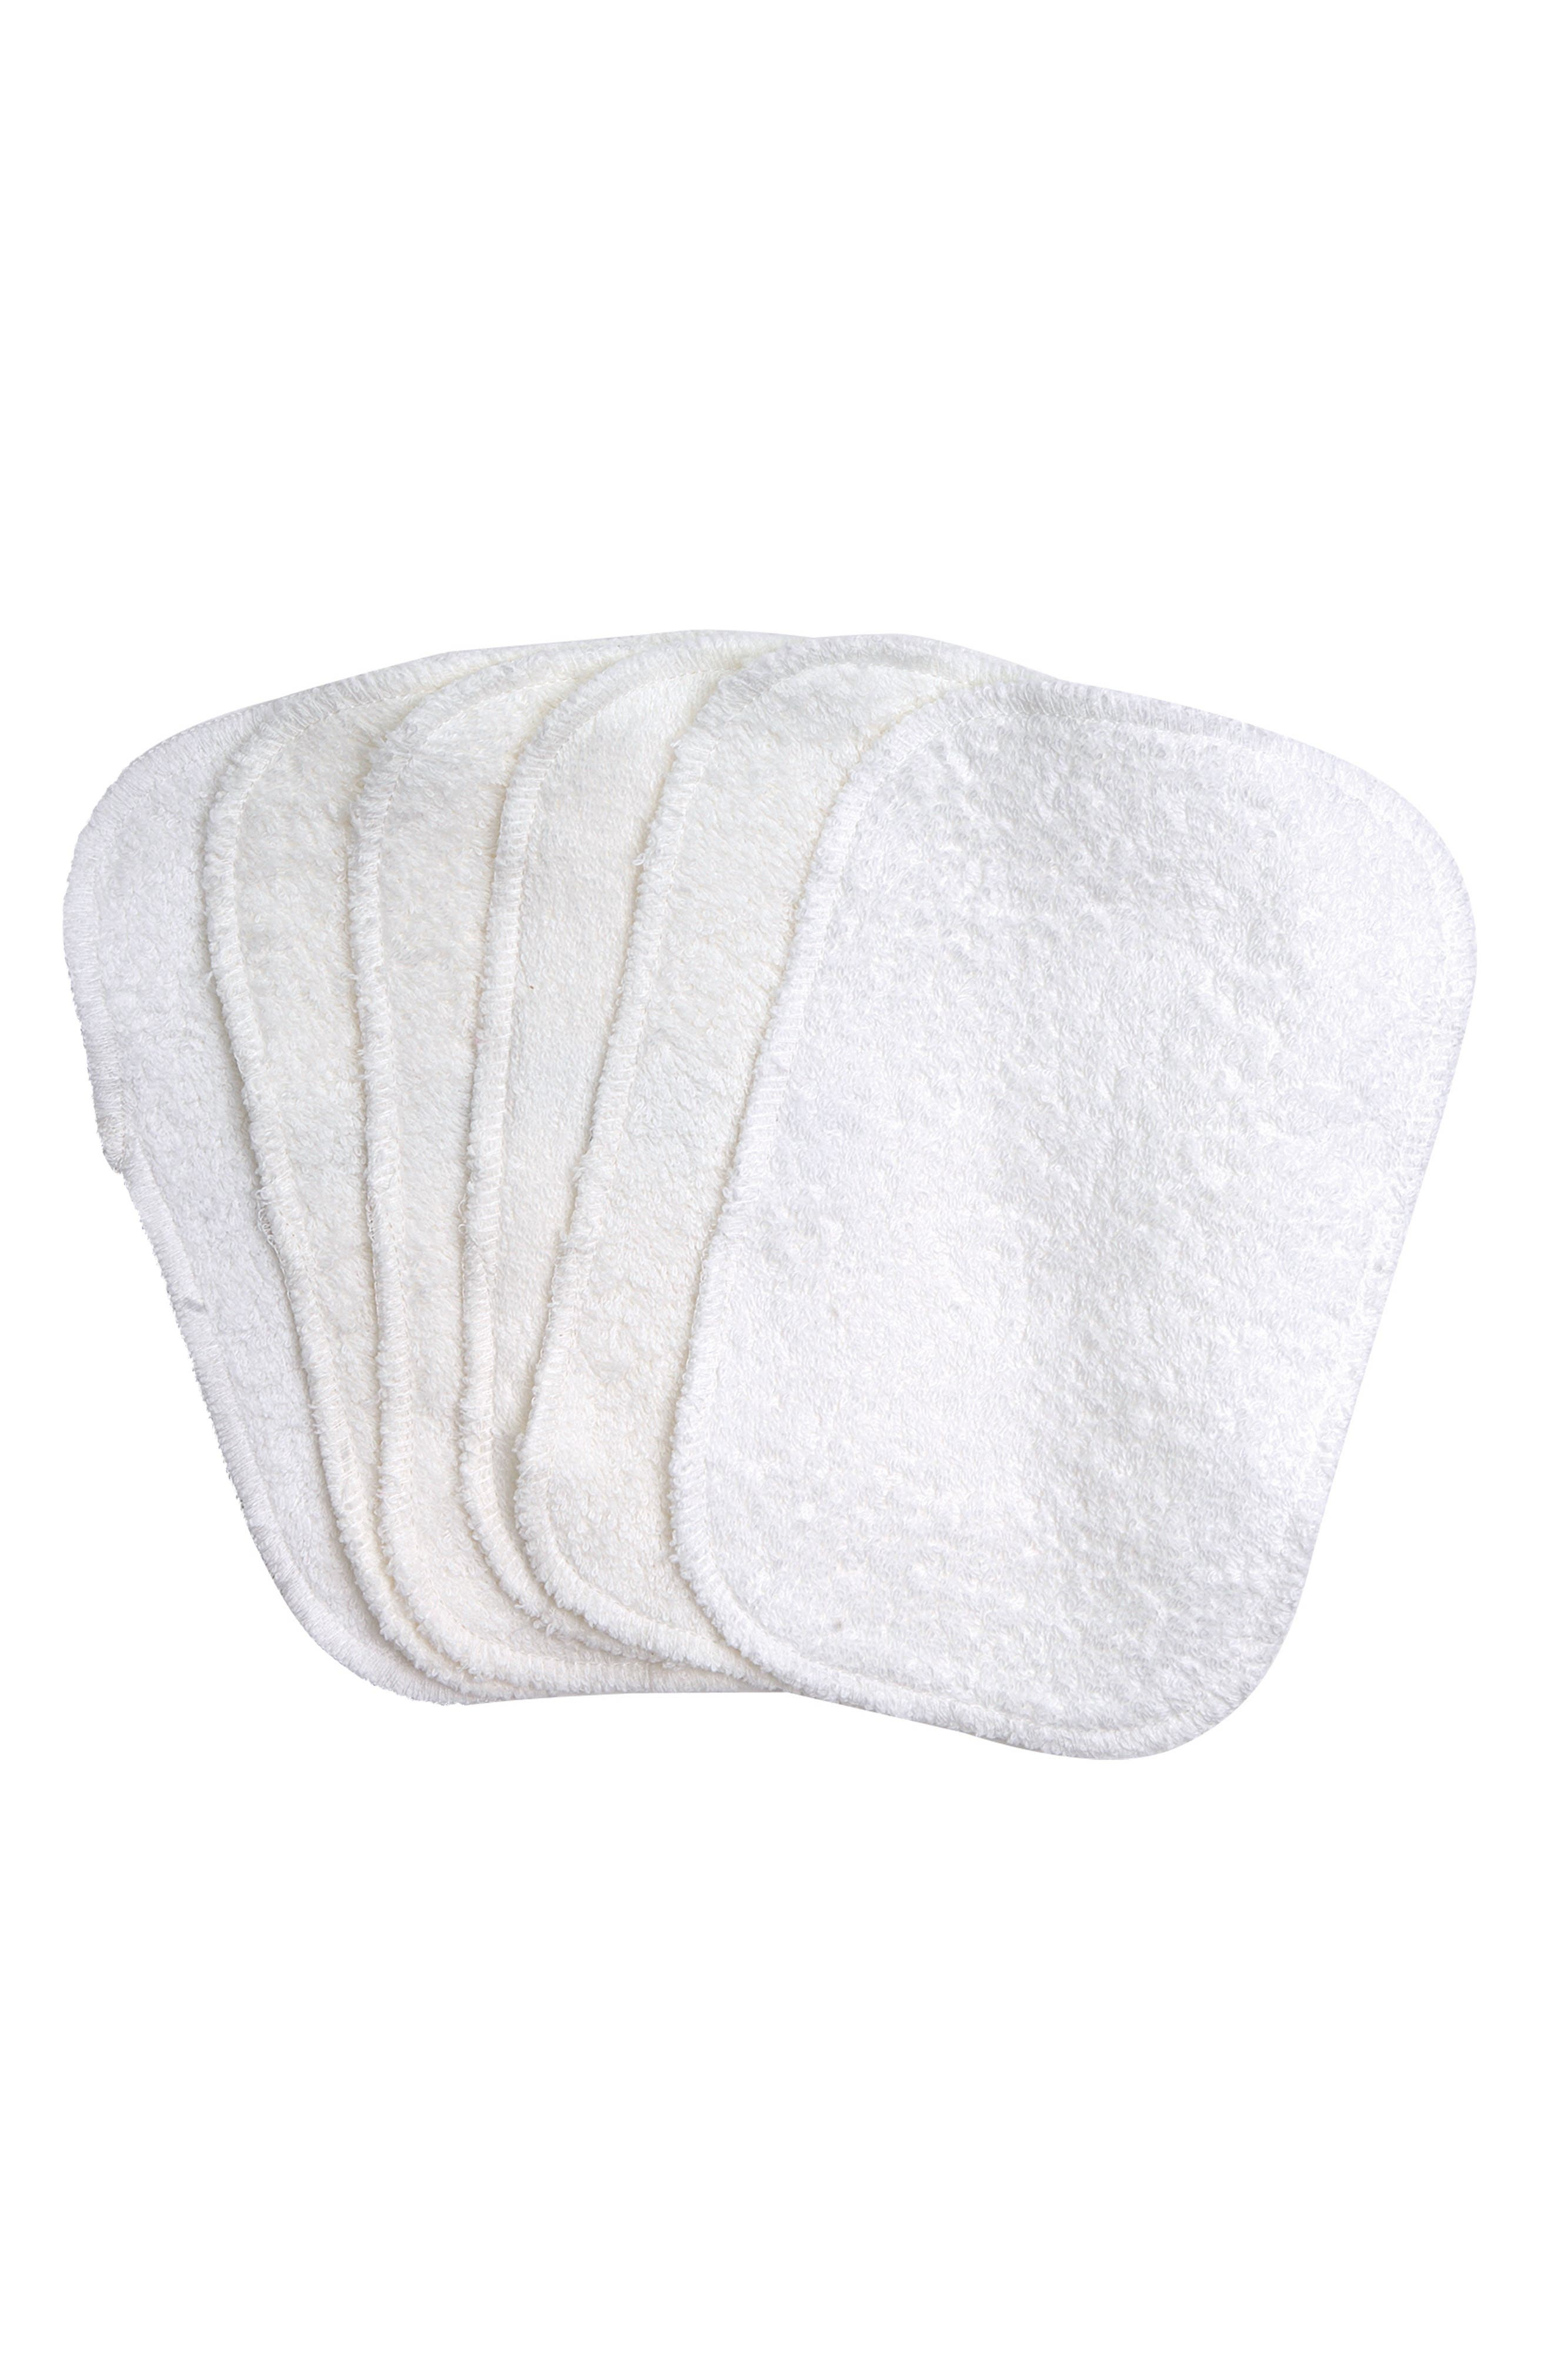 6-Pack Organic Egyptian Cotton Terry Wipes,                             Main thumbnail 1, color,                             900